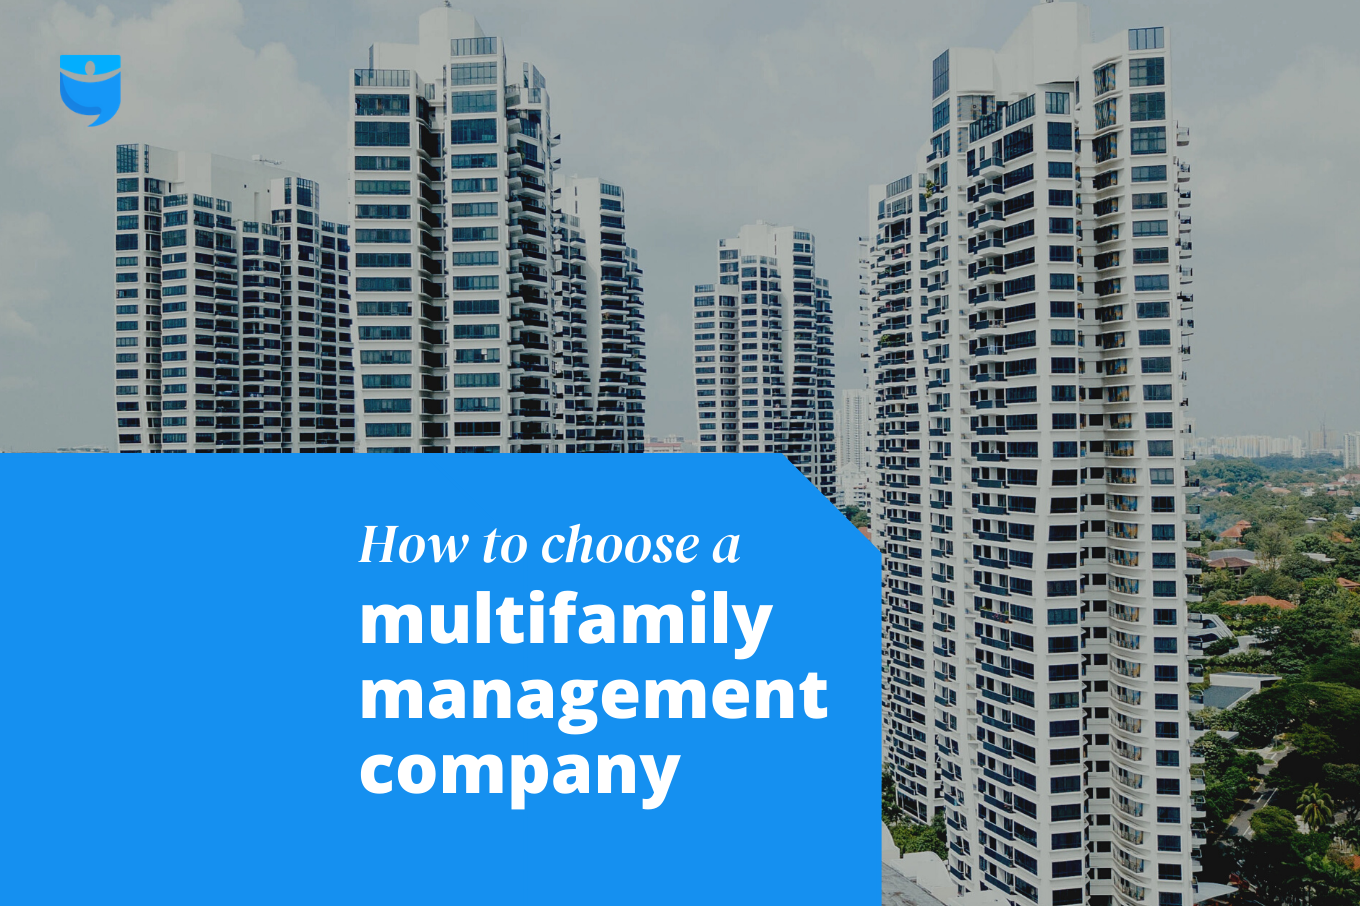 How to Choose a Management Company for Multifamily Properties